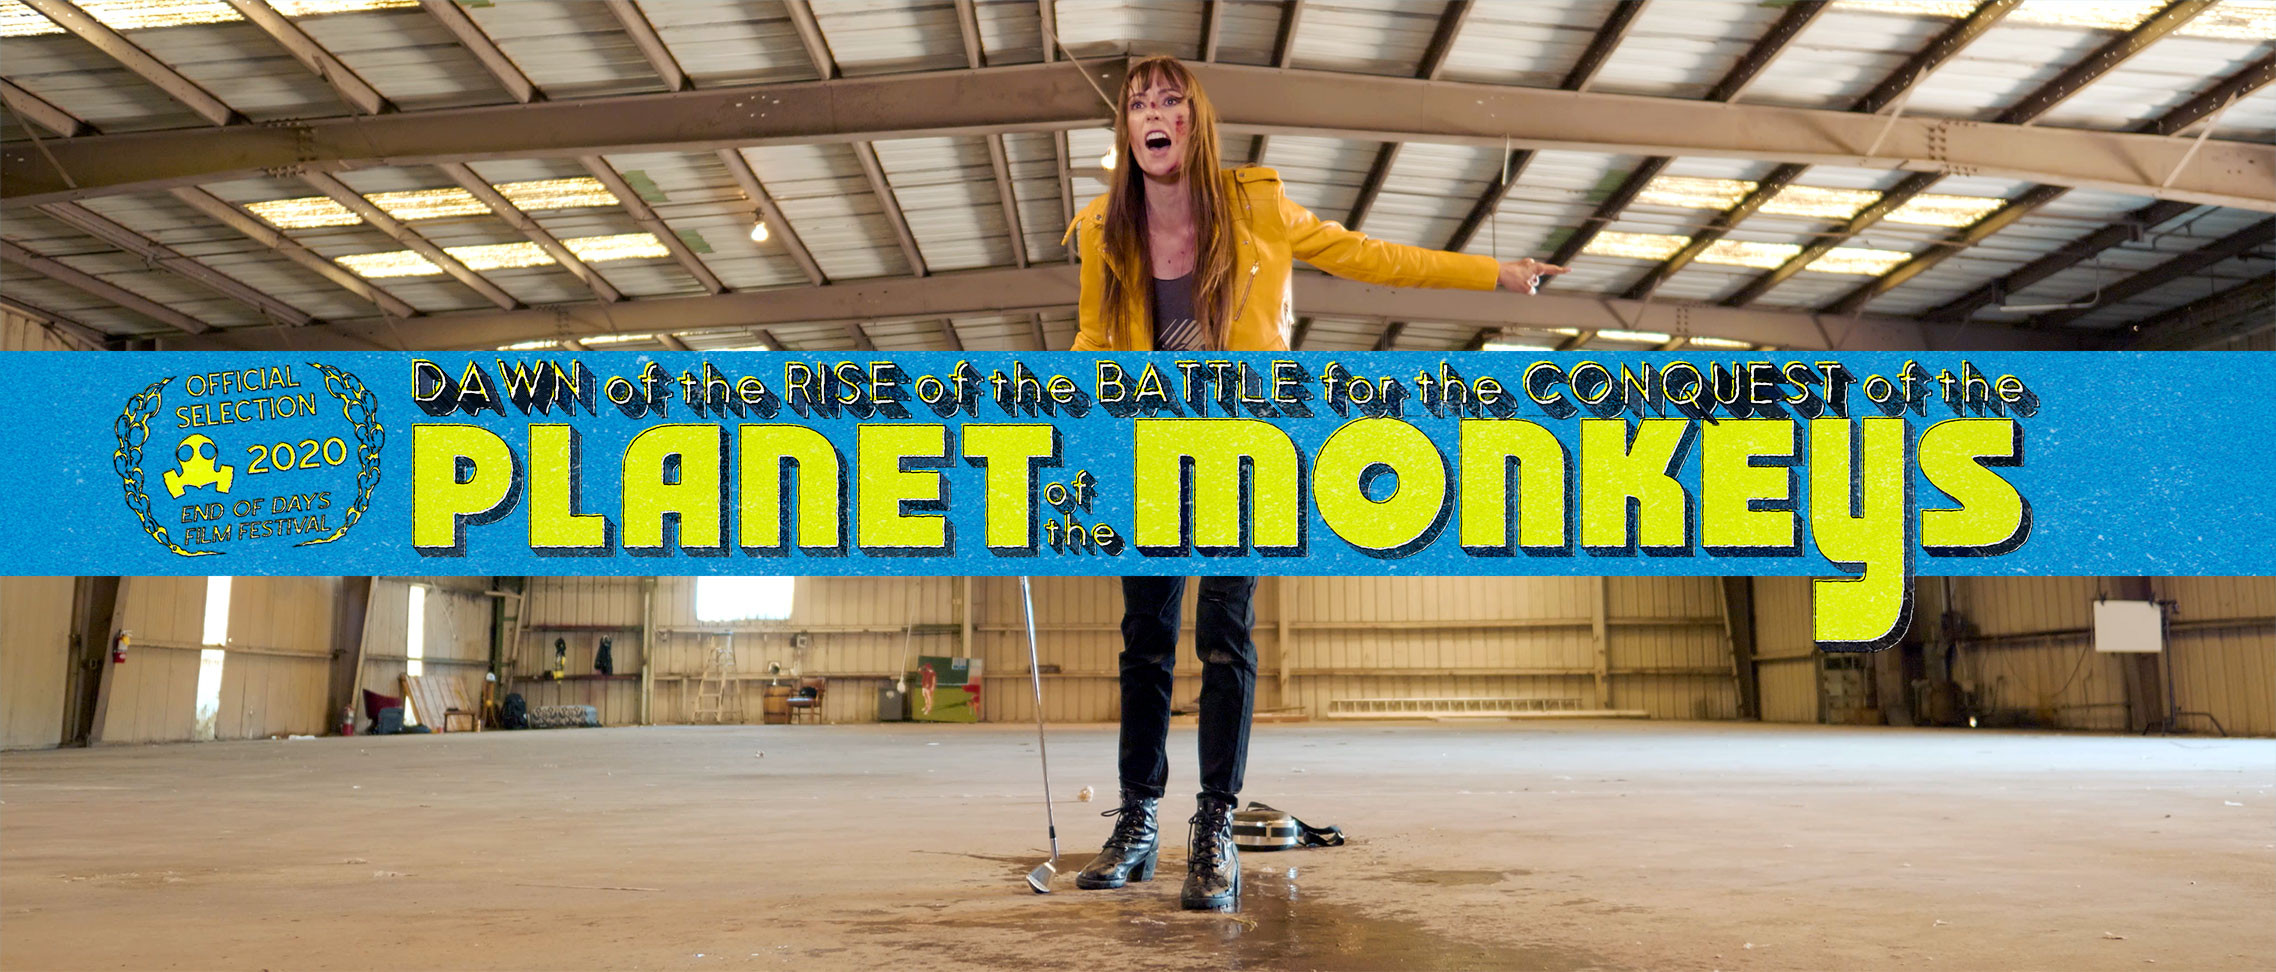 Dawn of the Rise of the Battle for the Conquest of the Planet of the Monkeys (2018)